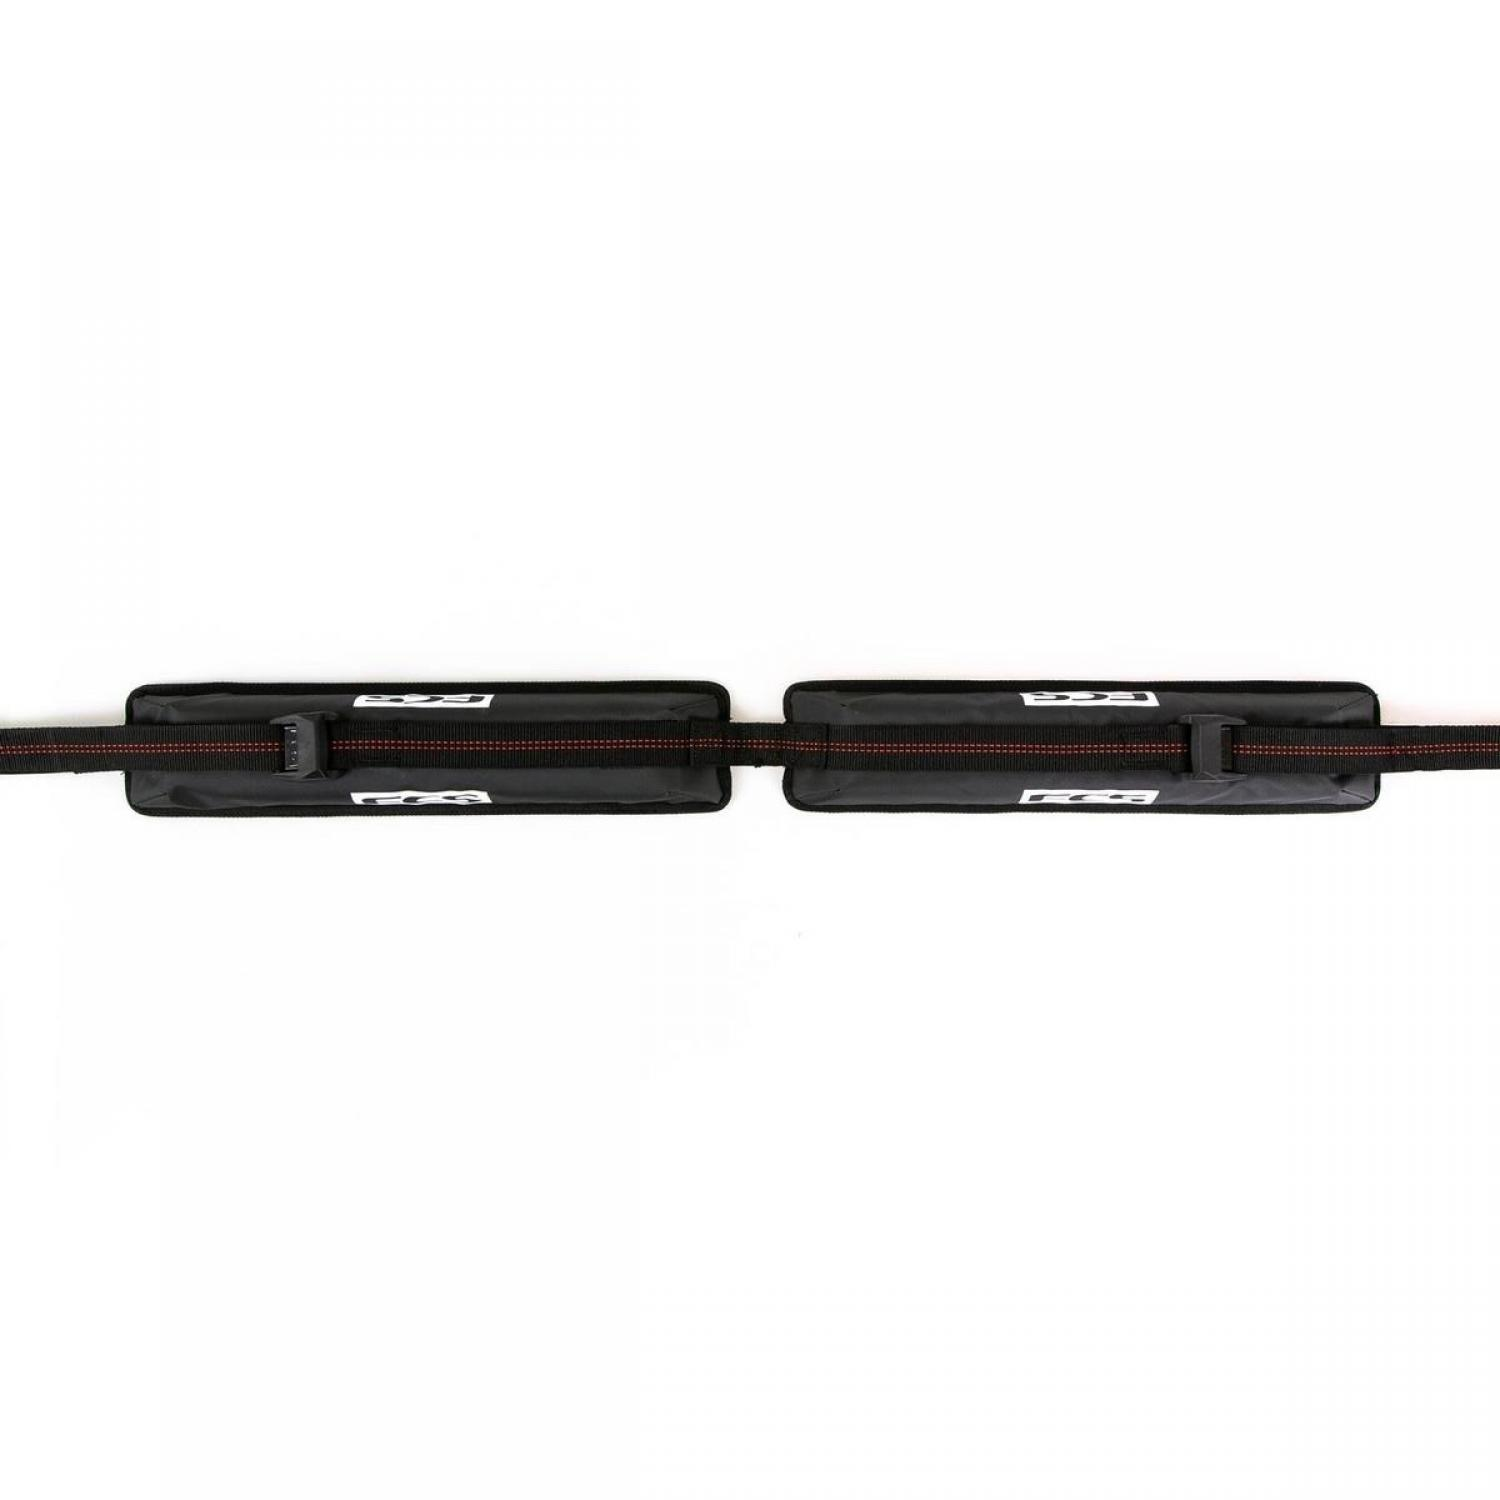 FCS CAM LOCK SOFT RACKS DOUBLE